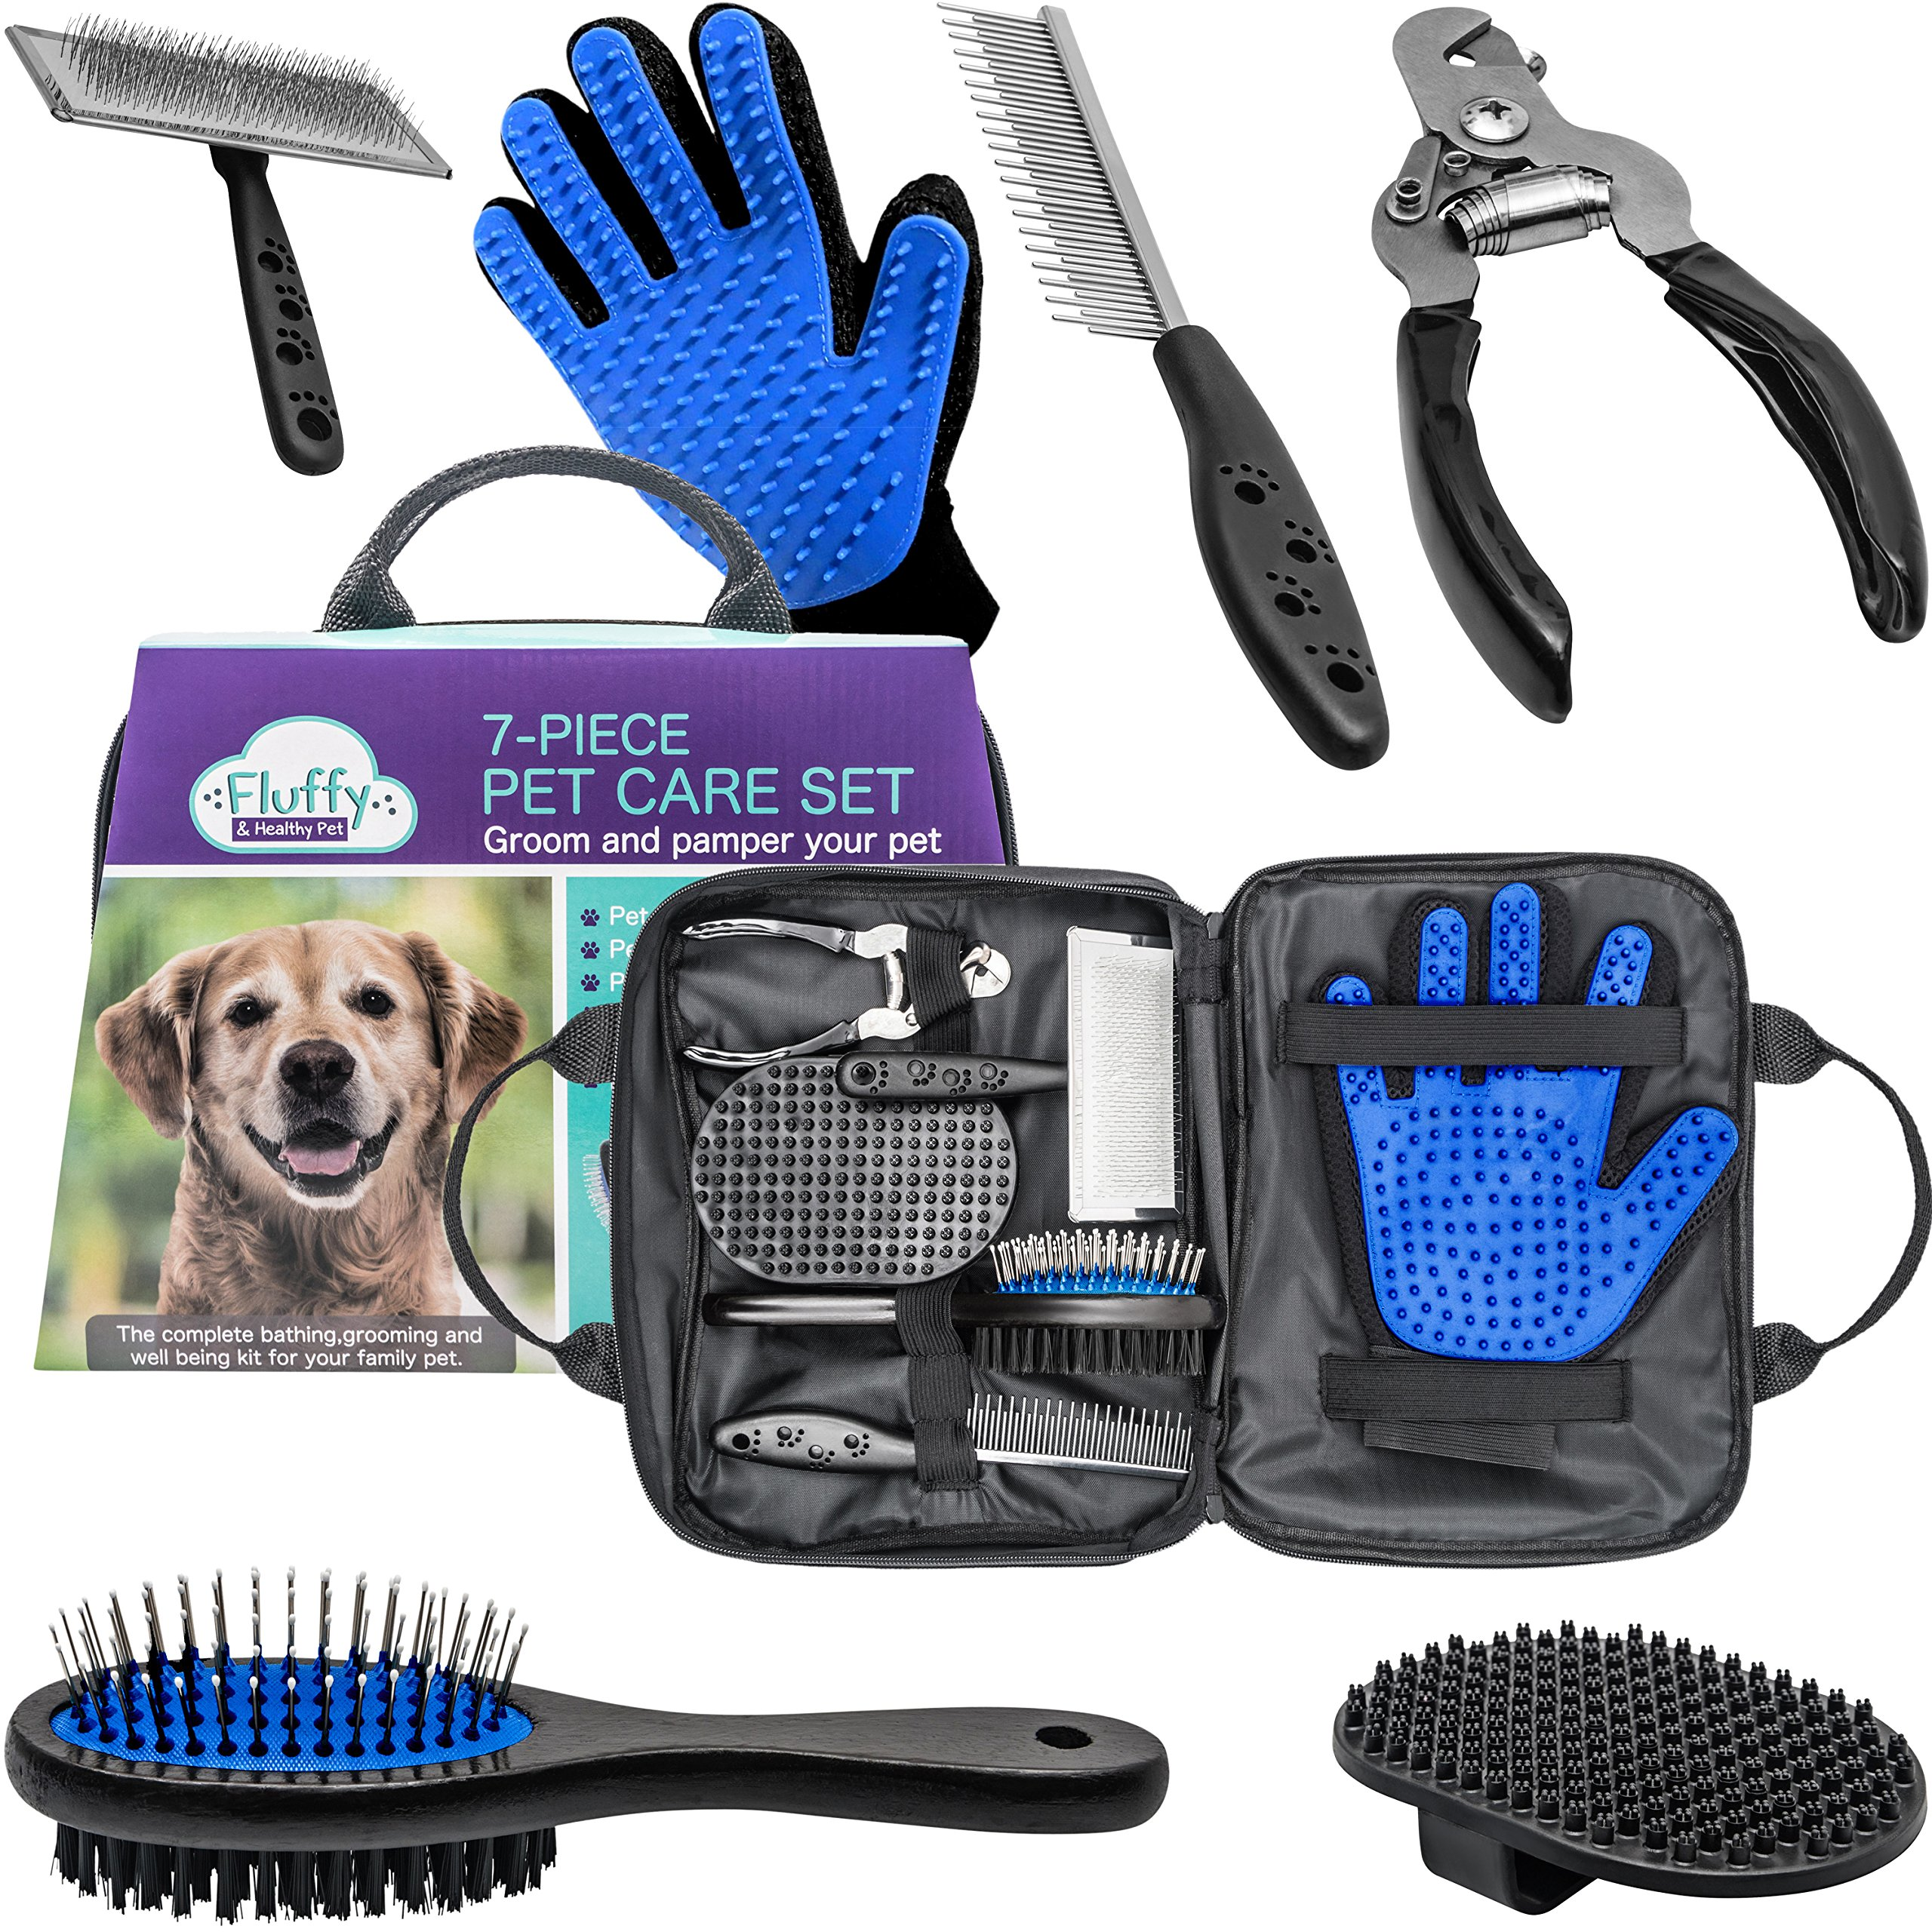 Pet Grooming Tools Kit With Dog Nail Clippers, Pet Hair Remover Glove, Double-sided Pet Hair Brush, Slicker Brush, Pet Massage Brush, Pet Comb and Carrying Case - All in One 7-Piece Pet Care Set